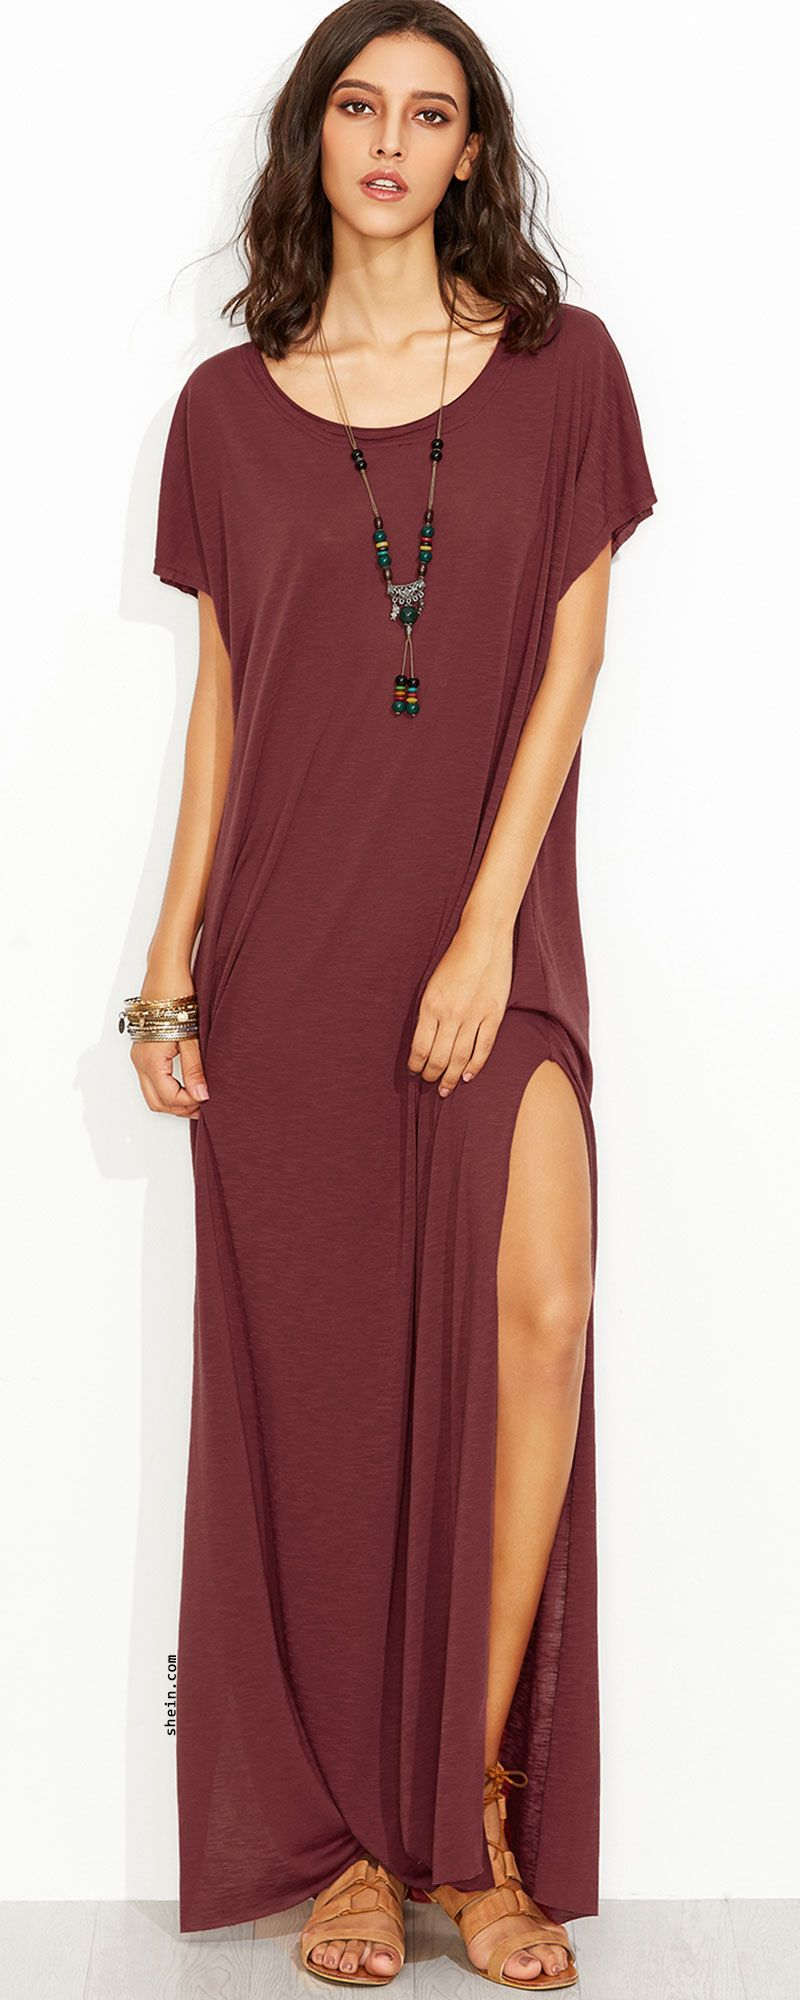 a32a0b7b0d0f  Summer  Outfits   Burgundy Slit Maxi Dress + Brown Sandals